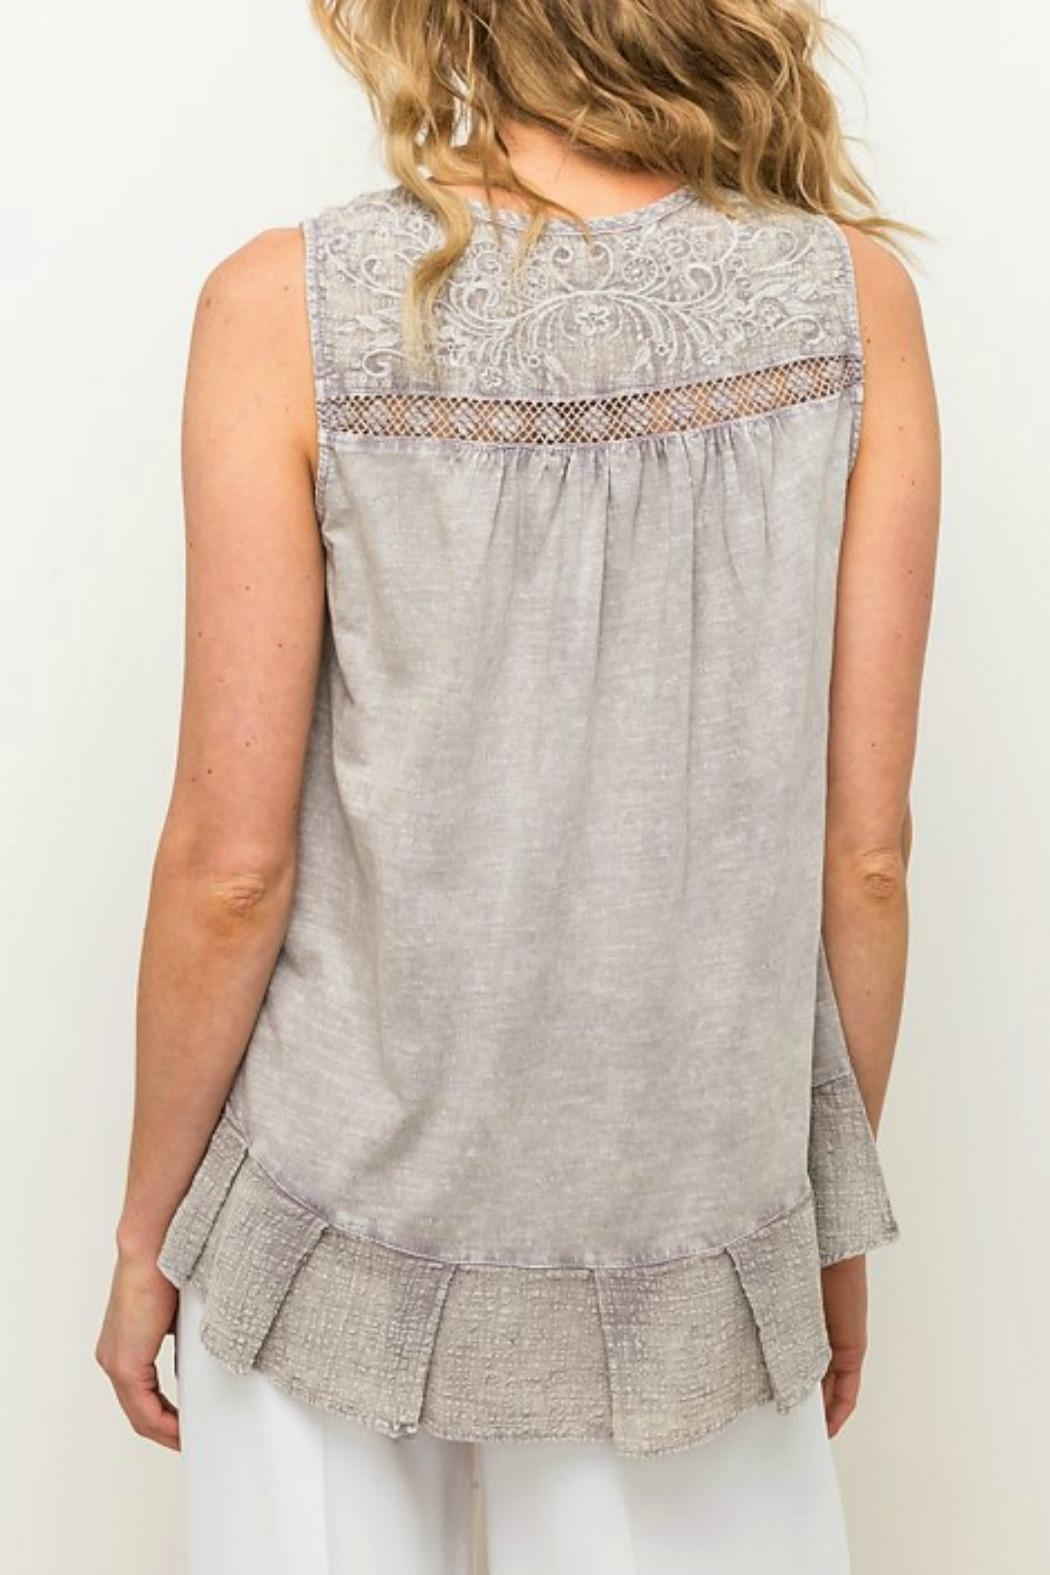 Mystree Embroidered Lace Top - Front Full Image